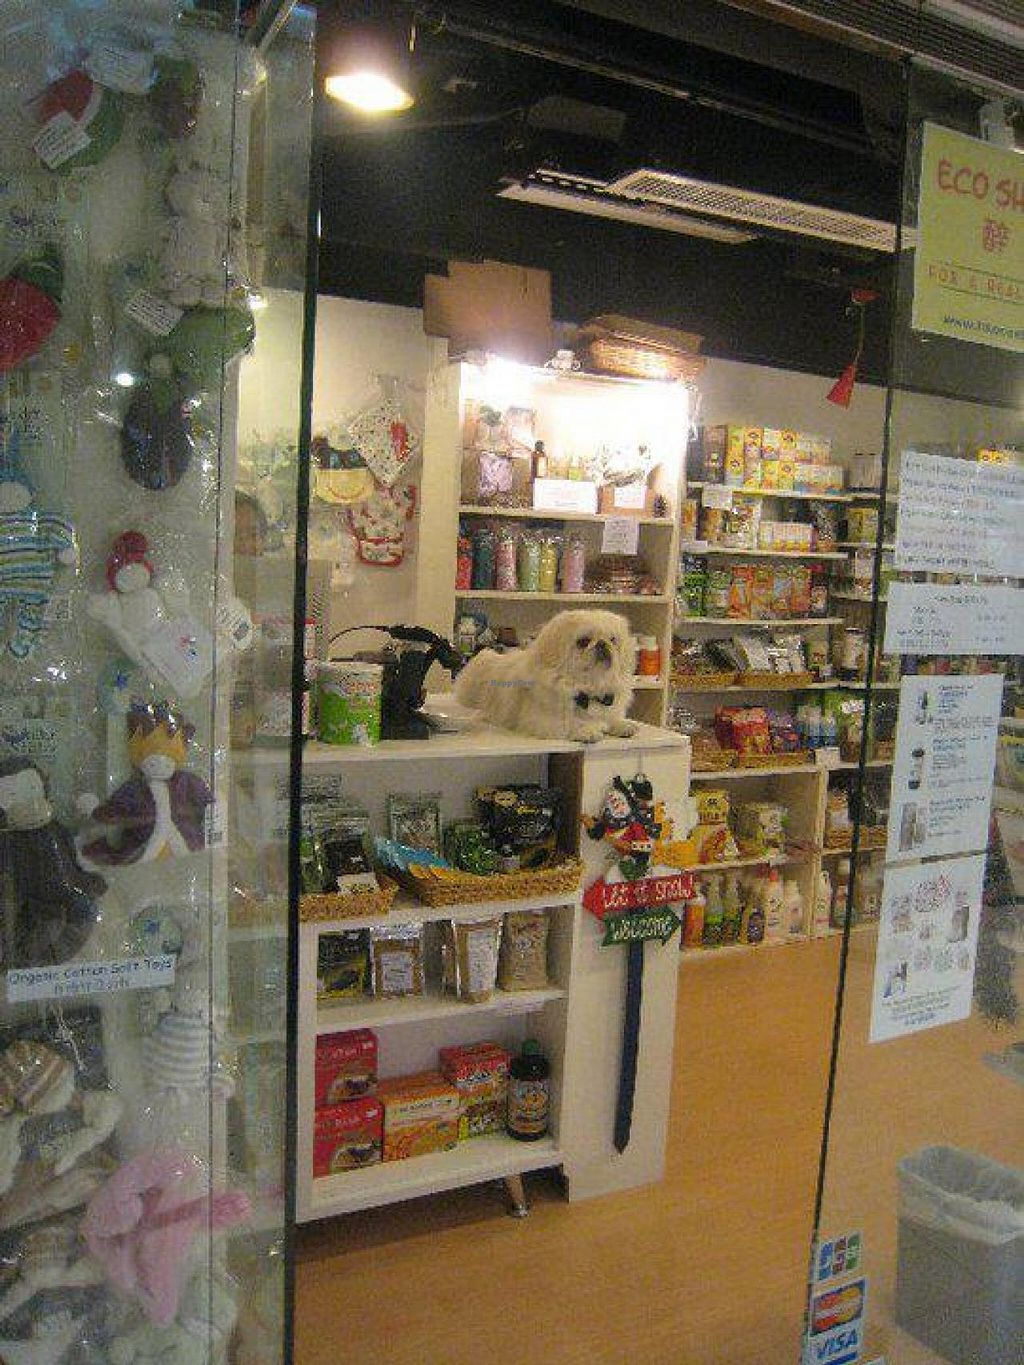 """Photo of Eco Shop  by <a href=""""/members/profile/community"""">community</a> <br/>Eco Shop <br/> April 5, 2015  - <a href='/contact/abuse/image/57165/97913'>Report</a>"""